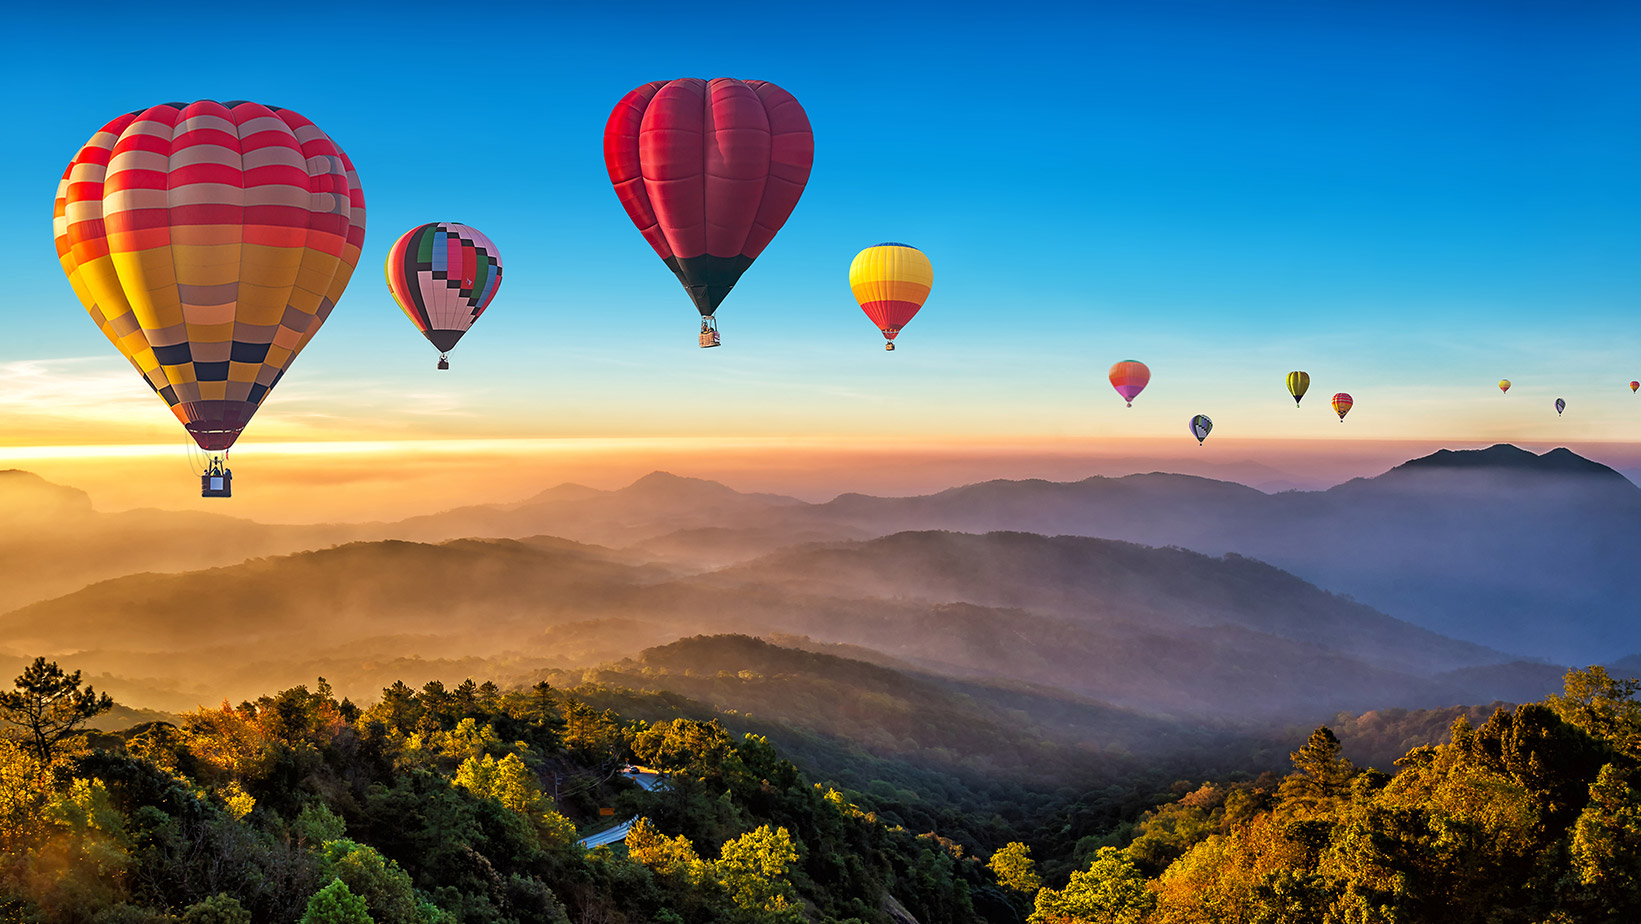 Balloons flying over a valley